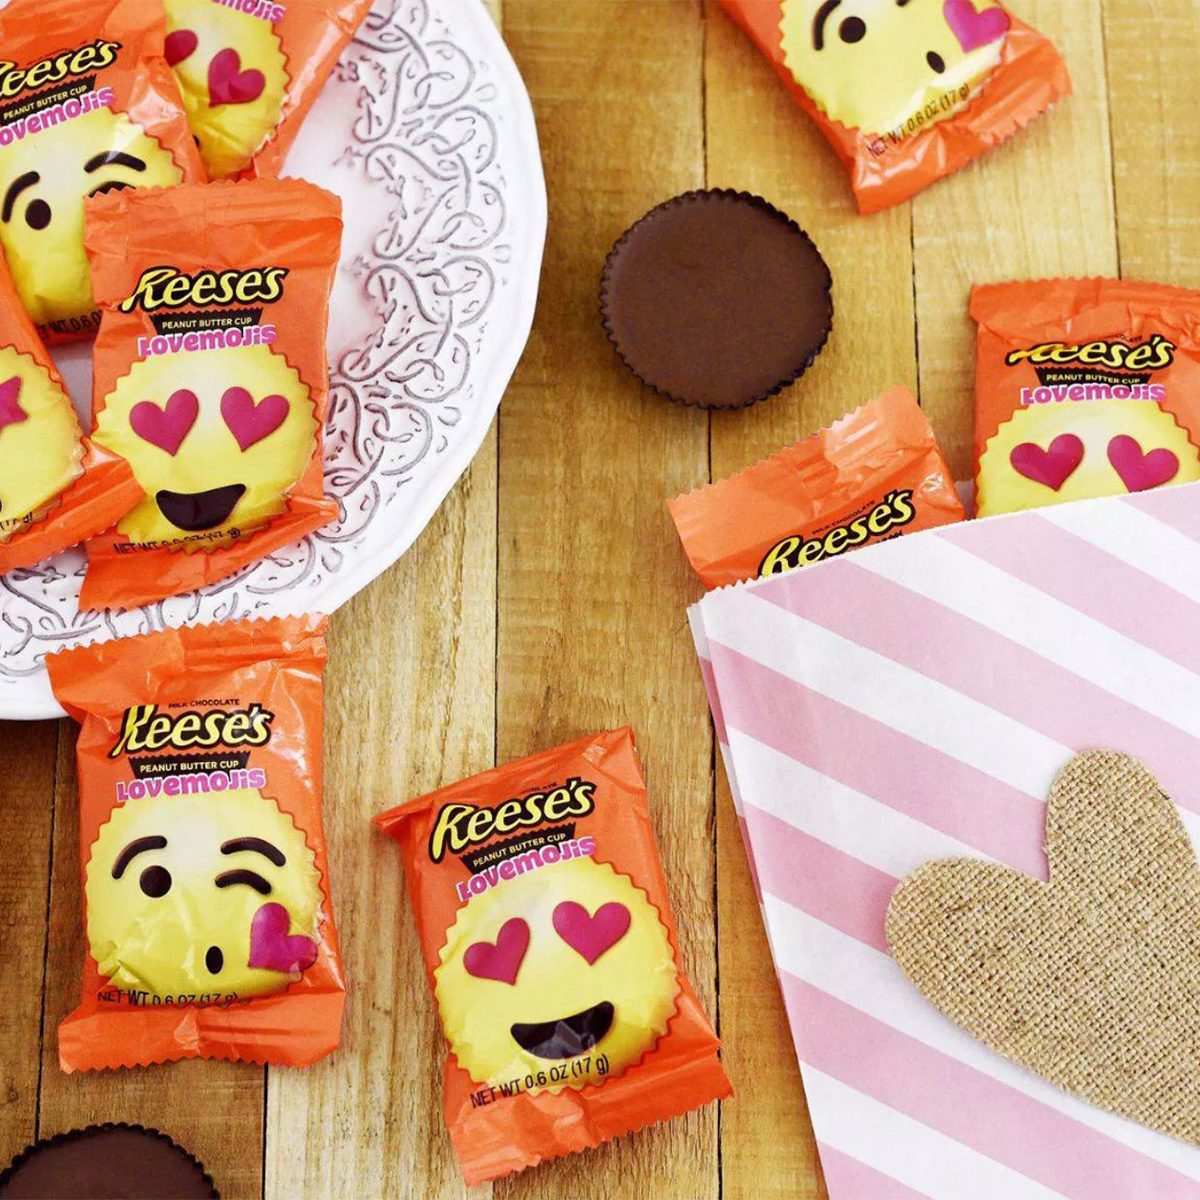 Reese's Valentine's Day cups